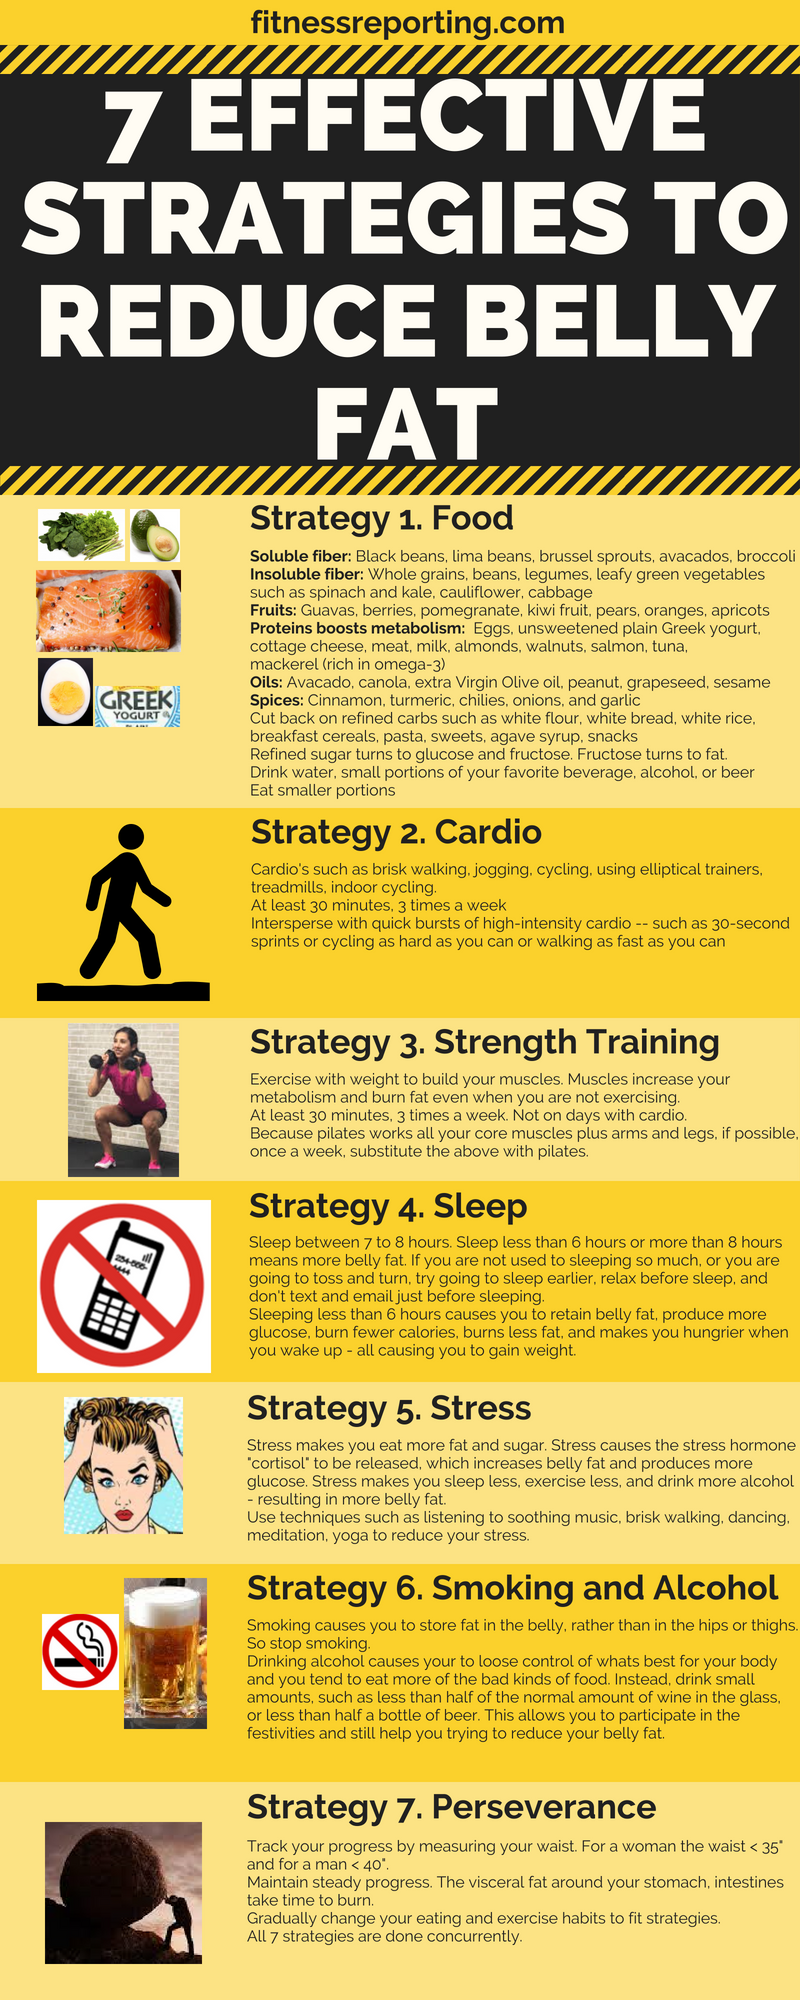 Strategies to reduce belly fat Infographic